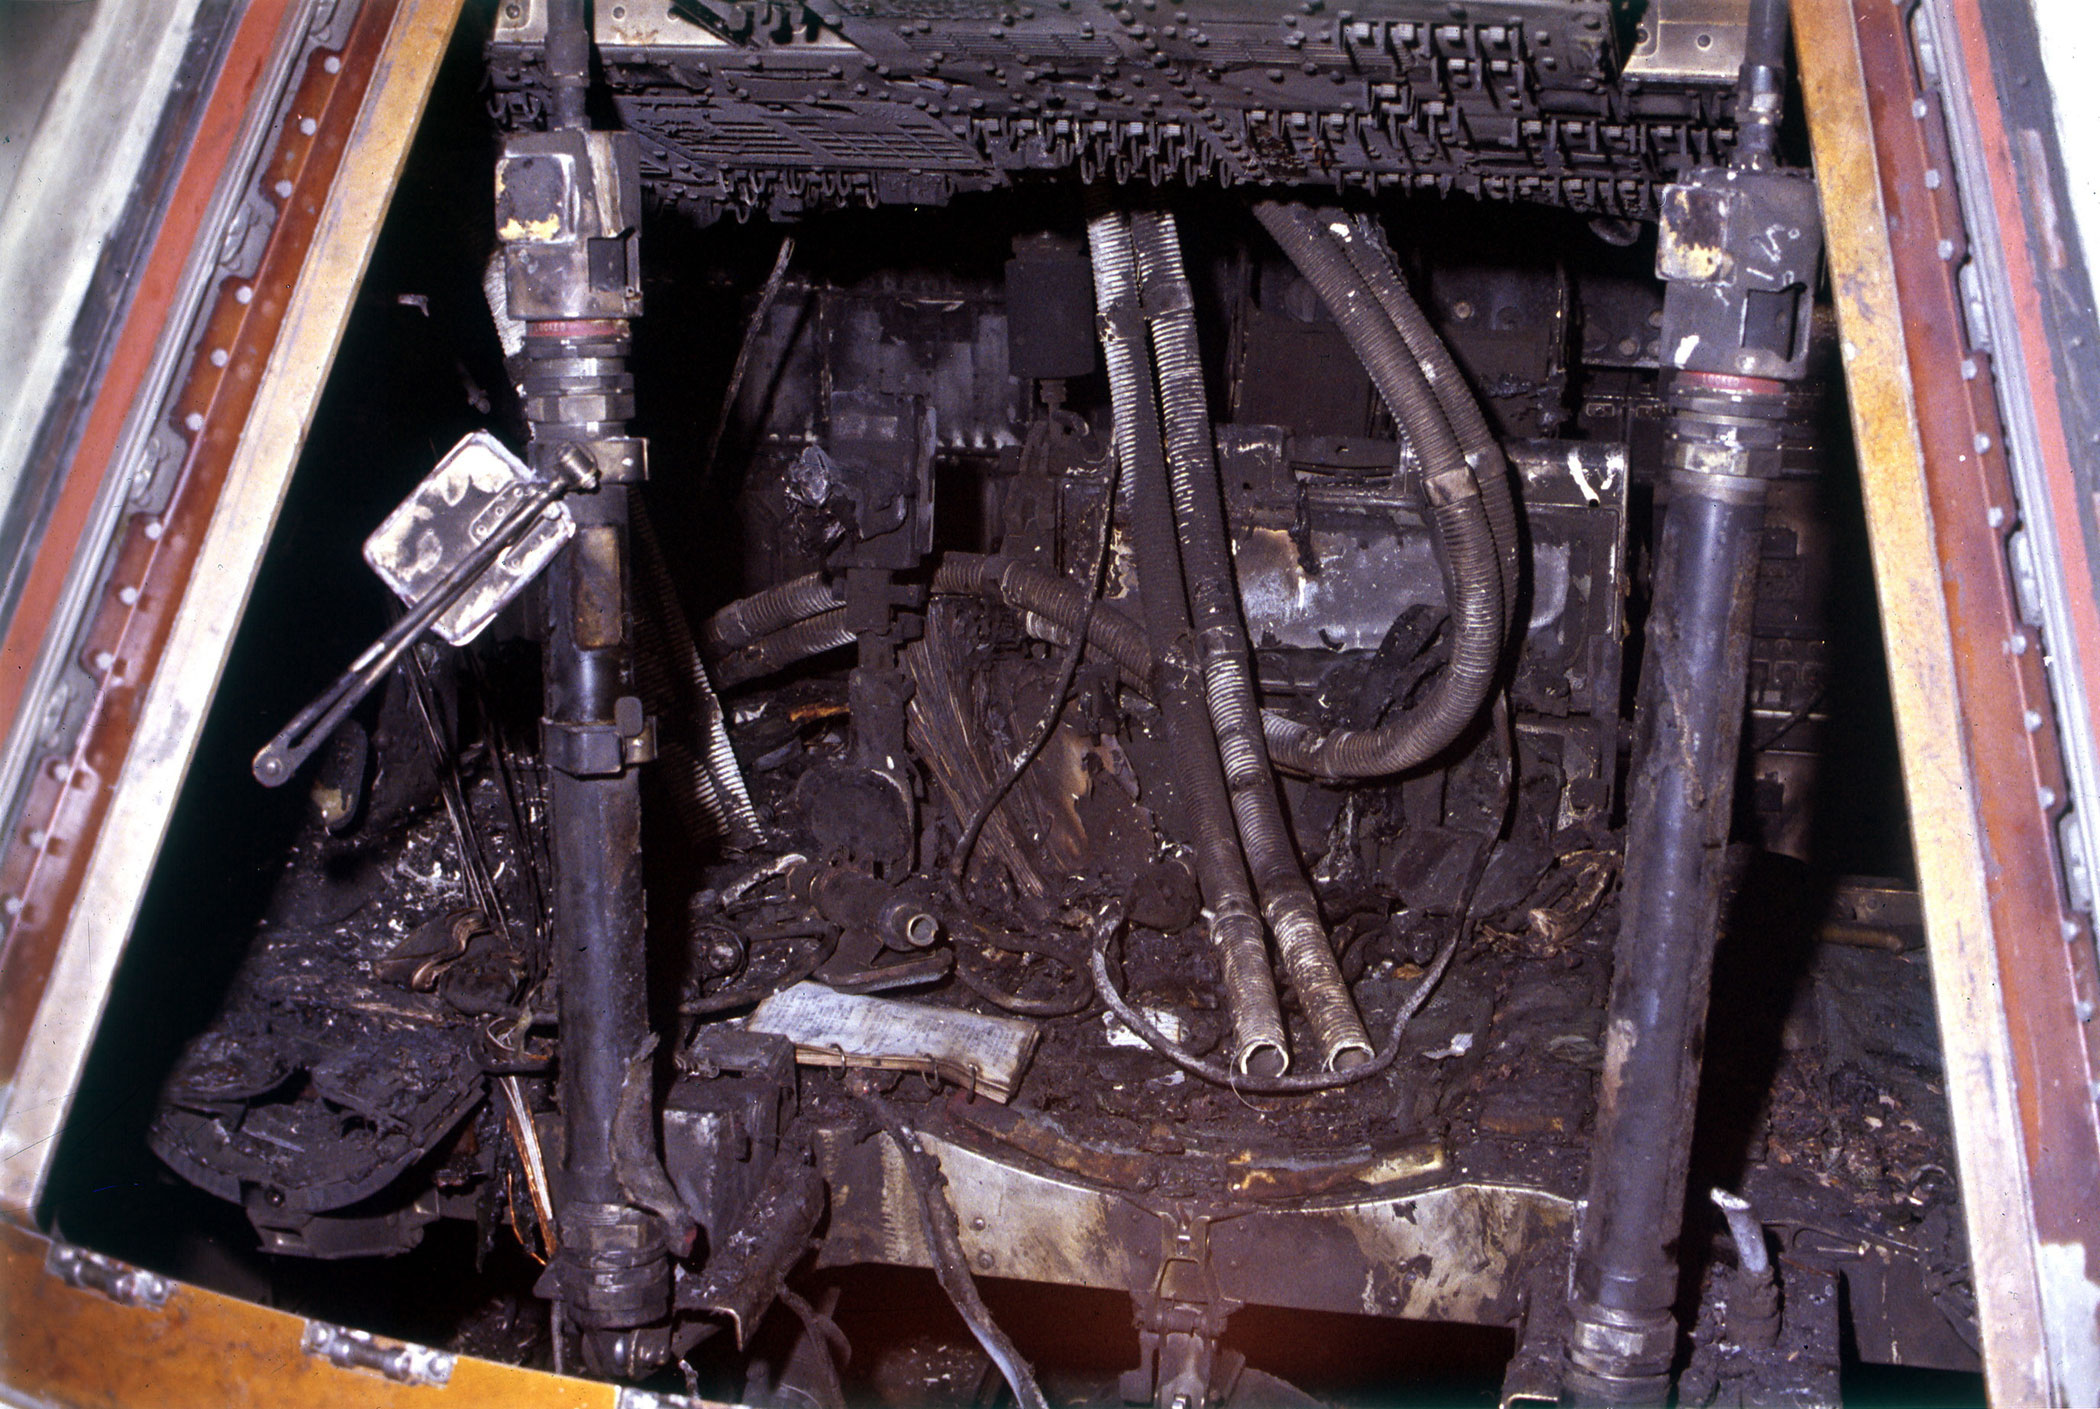 <b>Incinerated remains of Apollo 1, 1967</b>; The image was captured following the tragic disaster that struck the Apollo 1 mission. A fire inside the capsule caused the death of all three astronauts, 3 weeks before its planned launch.